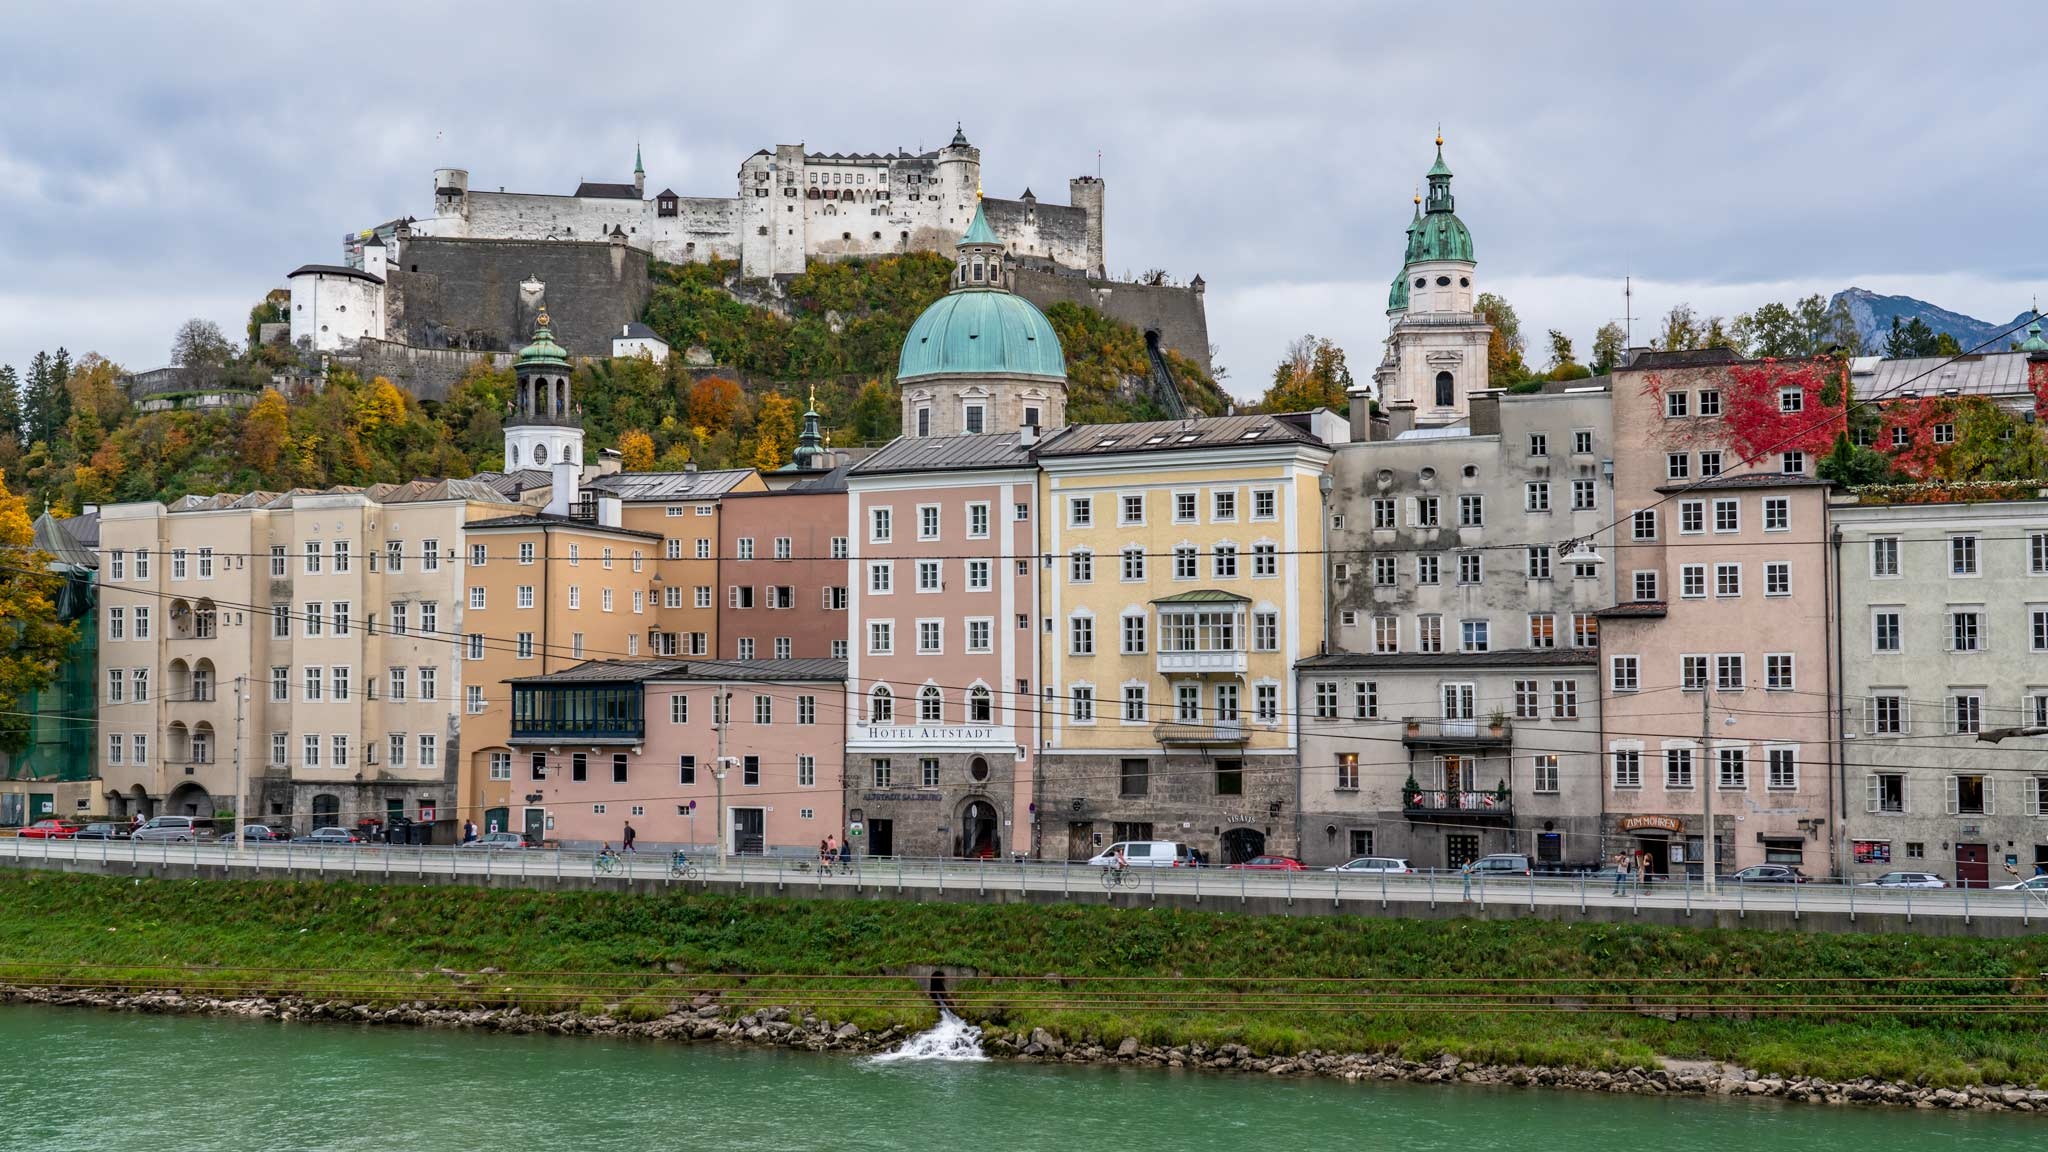 The Fortress dominates Salzburg's centre